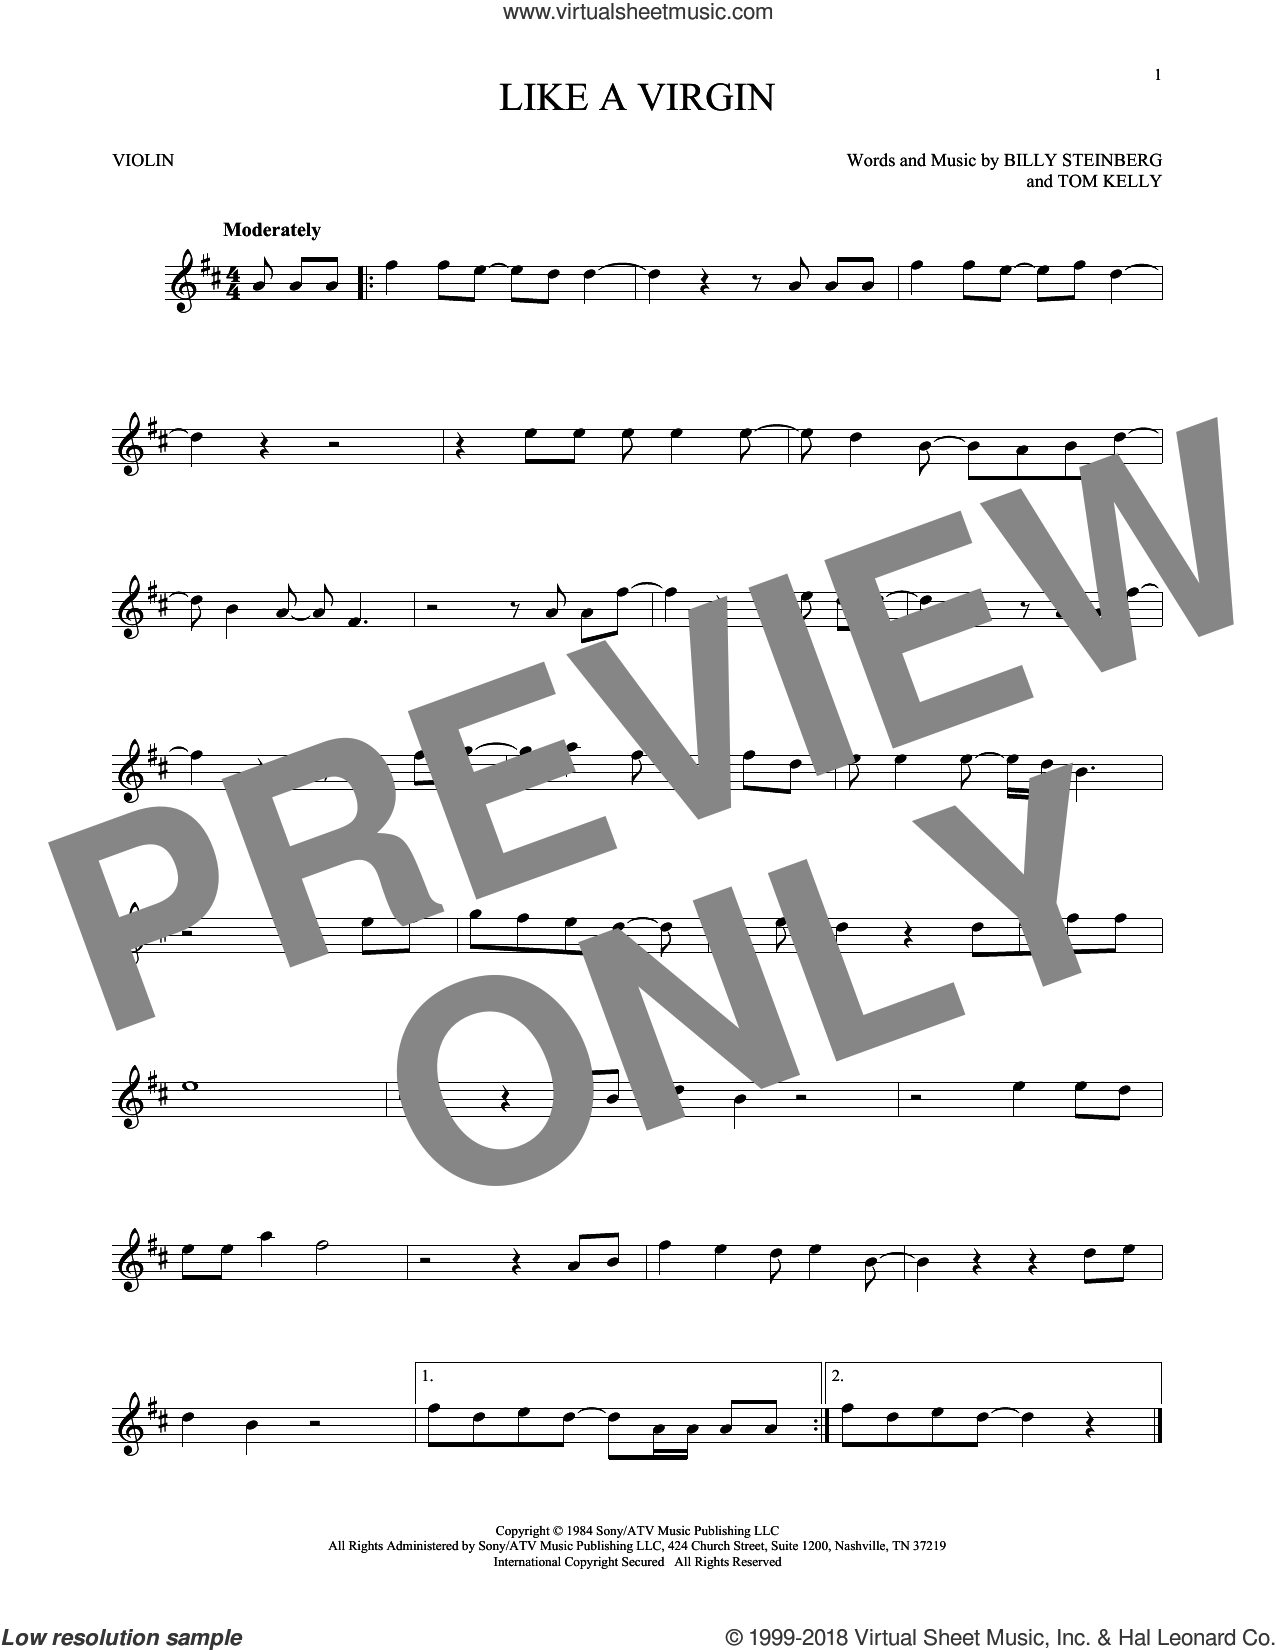 Like A Virgin sheet music for violin solo by Madonna, Billy Steinberg and Tom Kelly, intermediate skill level